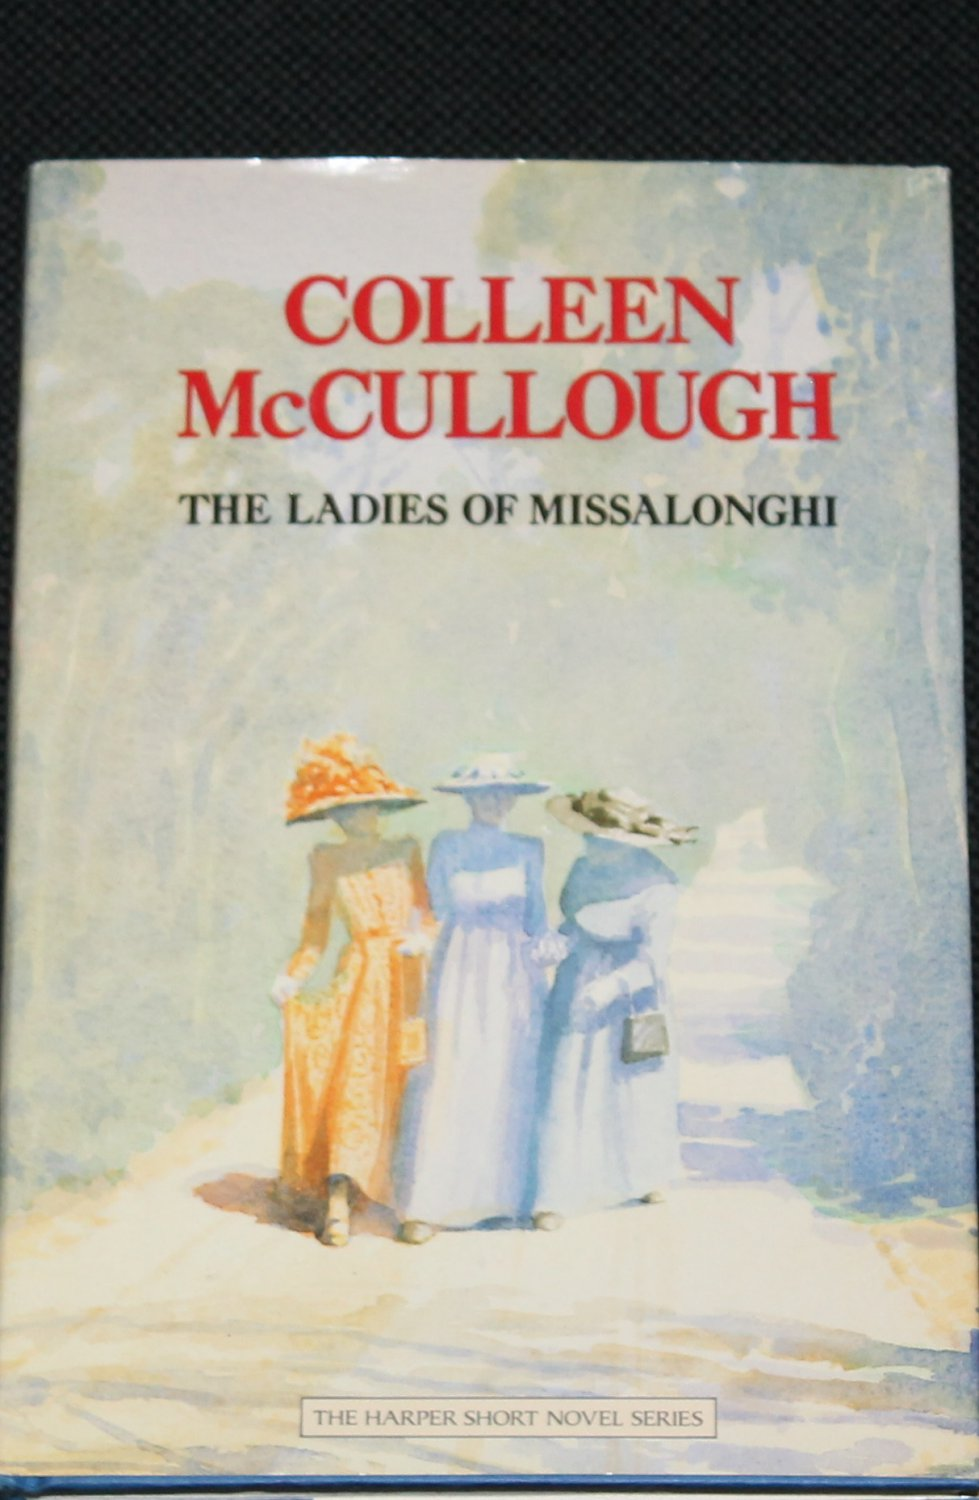 The Ladies of Missalonghi hardcover book by Colleen McCullough